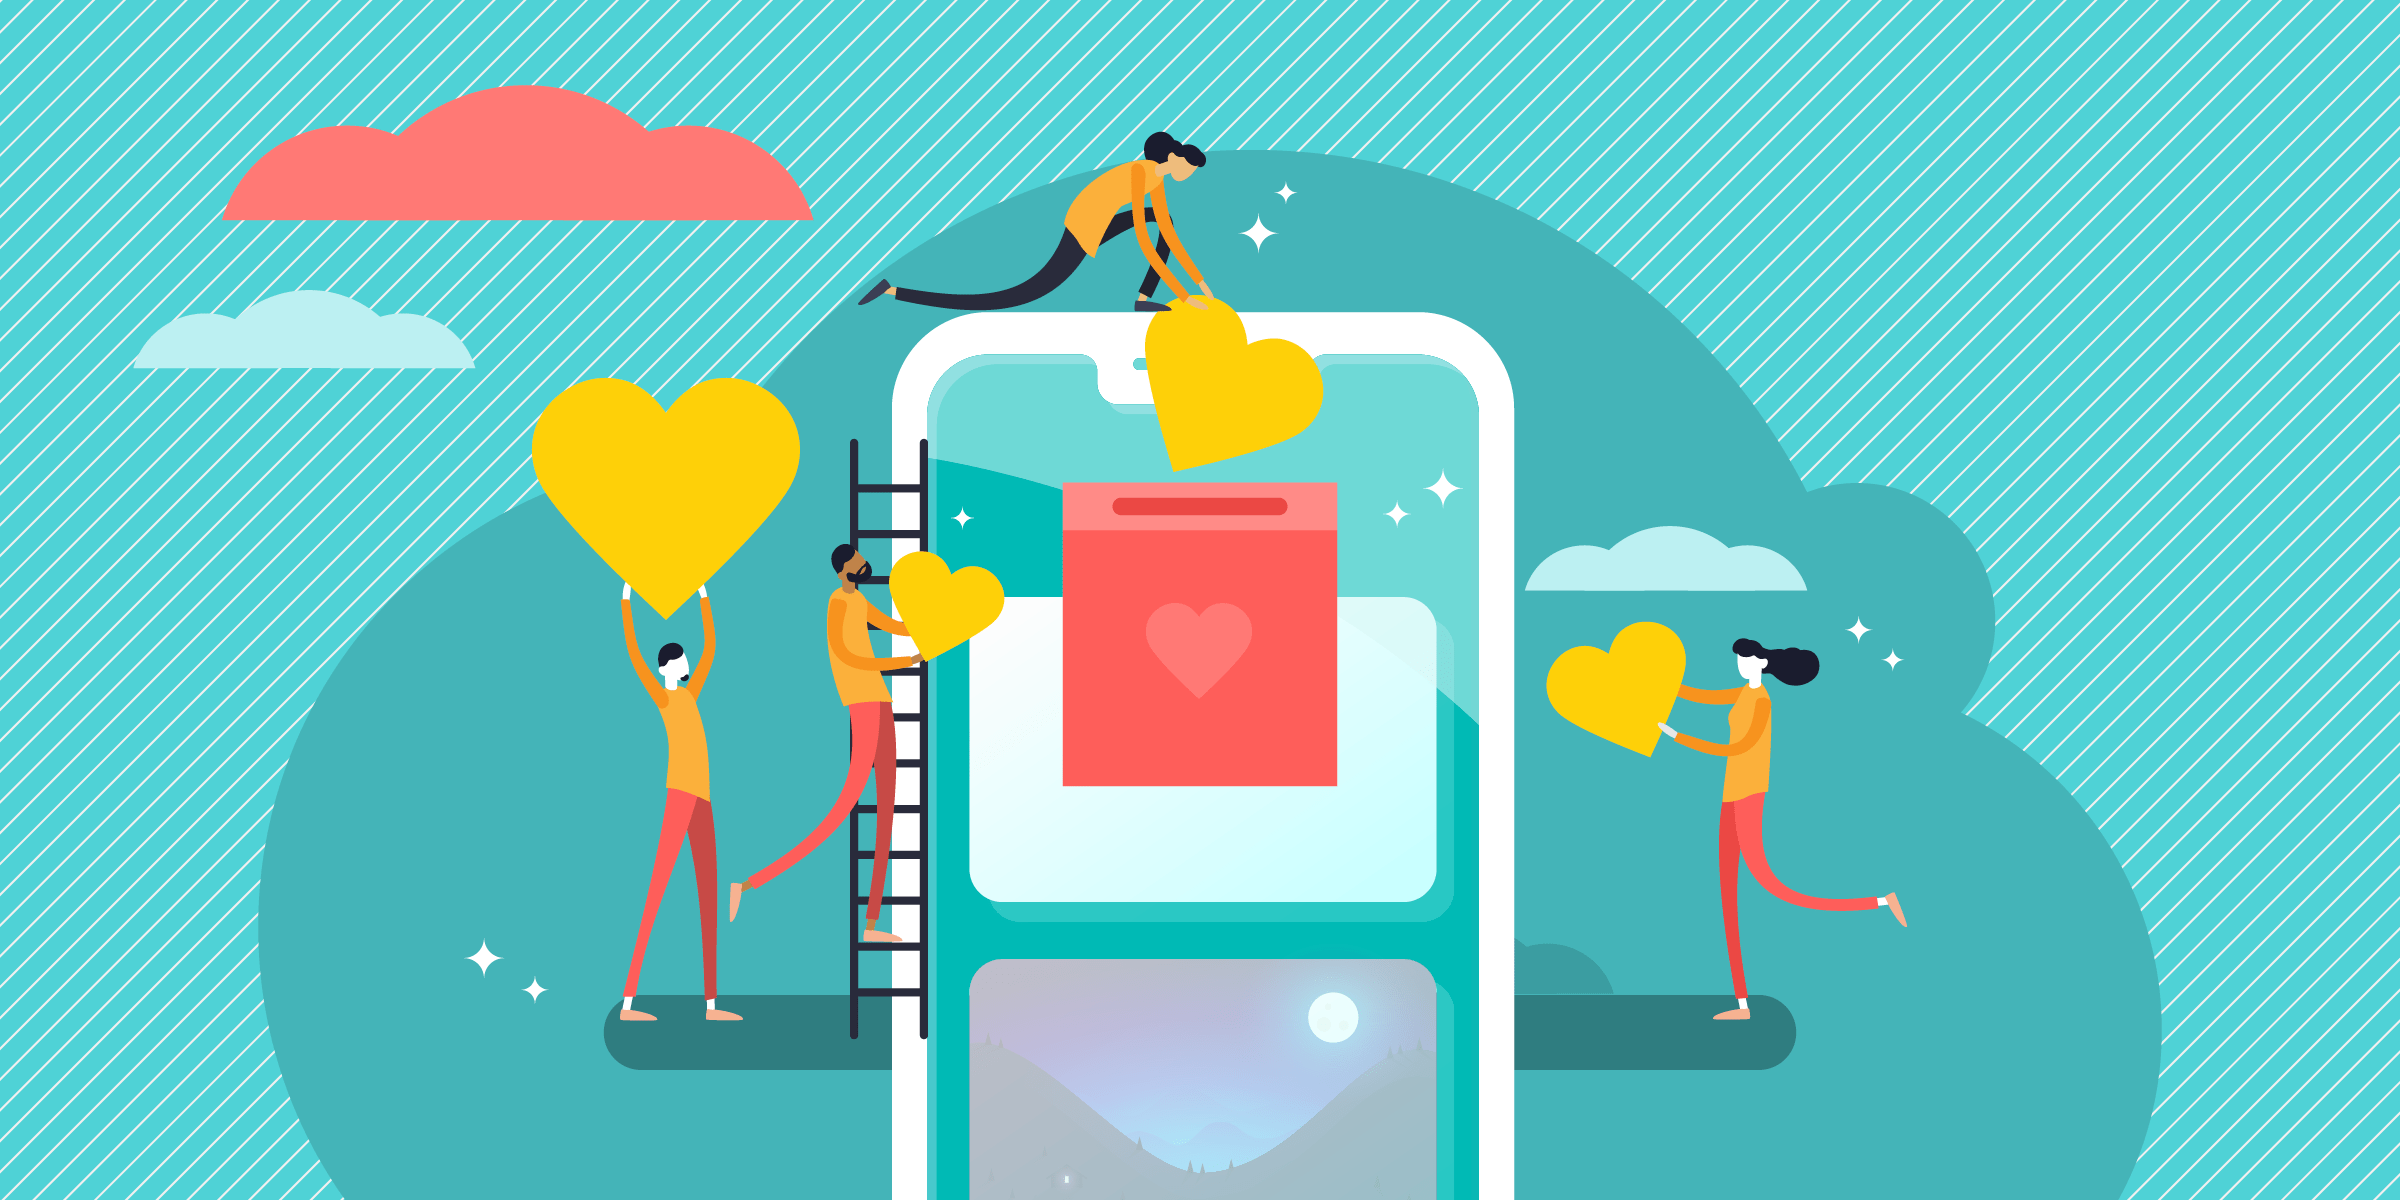 drawing of four small figures carrying hearts to be deposited in a box on a cellphone screen